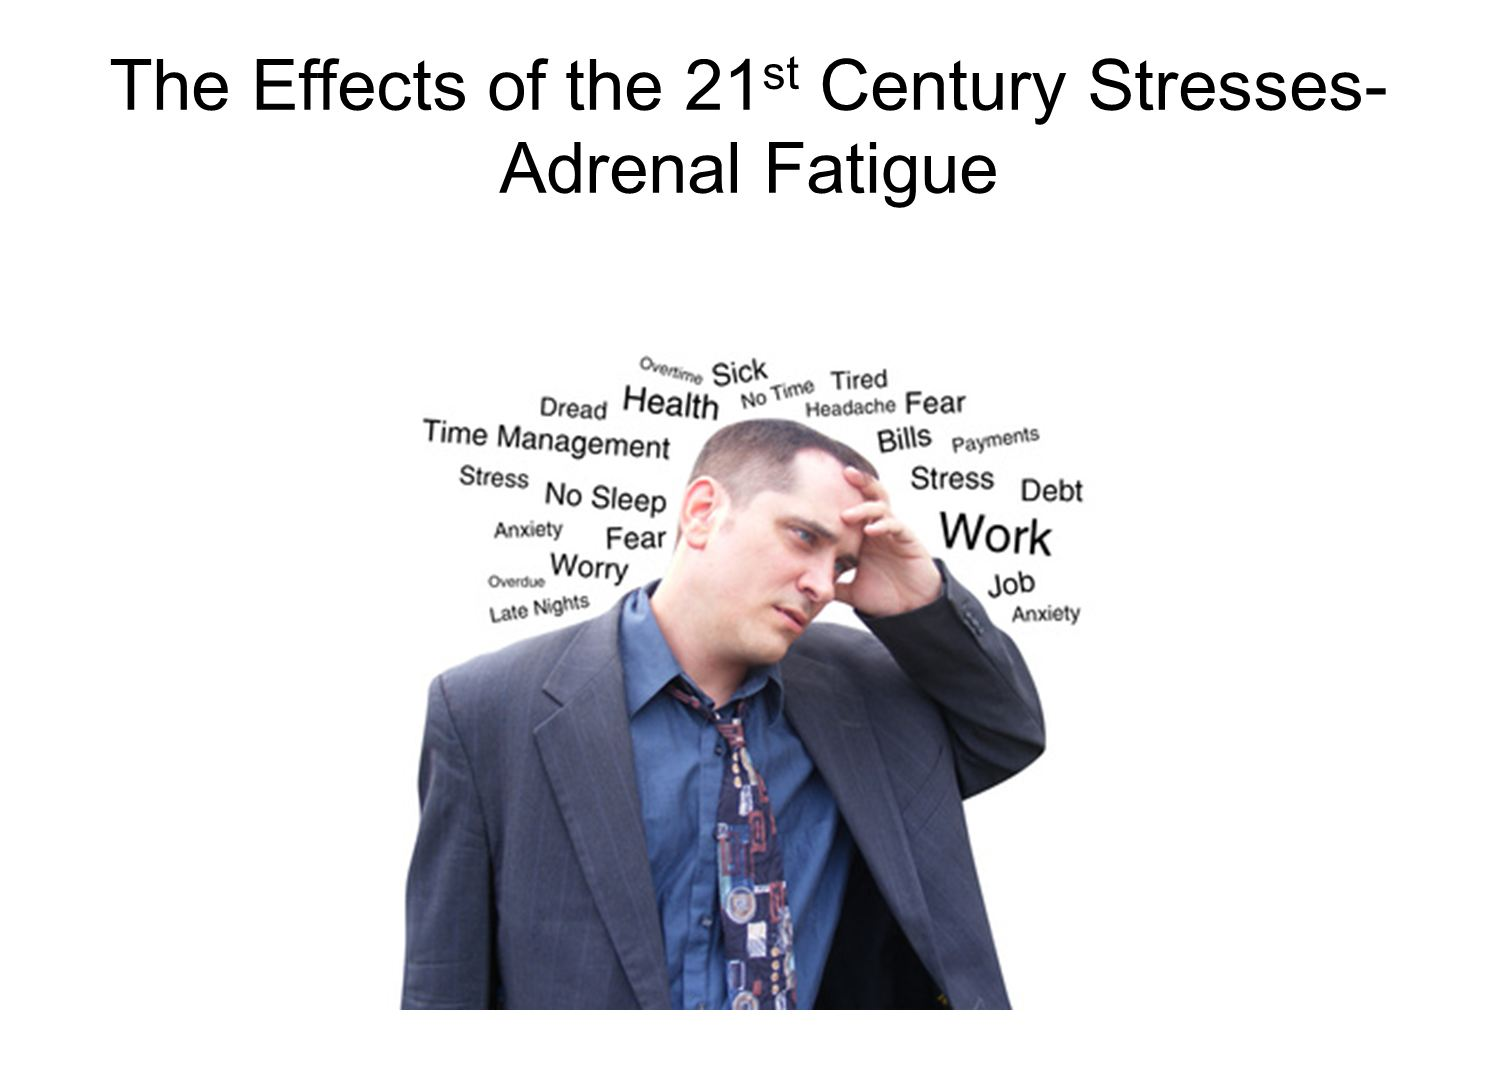 The Effects of the 21st Century Stresses